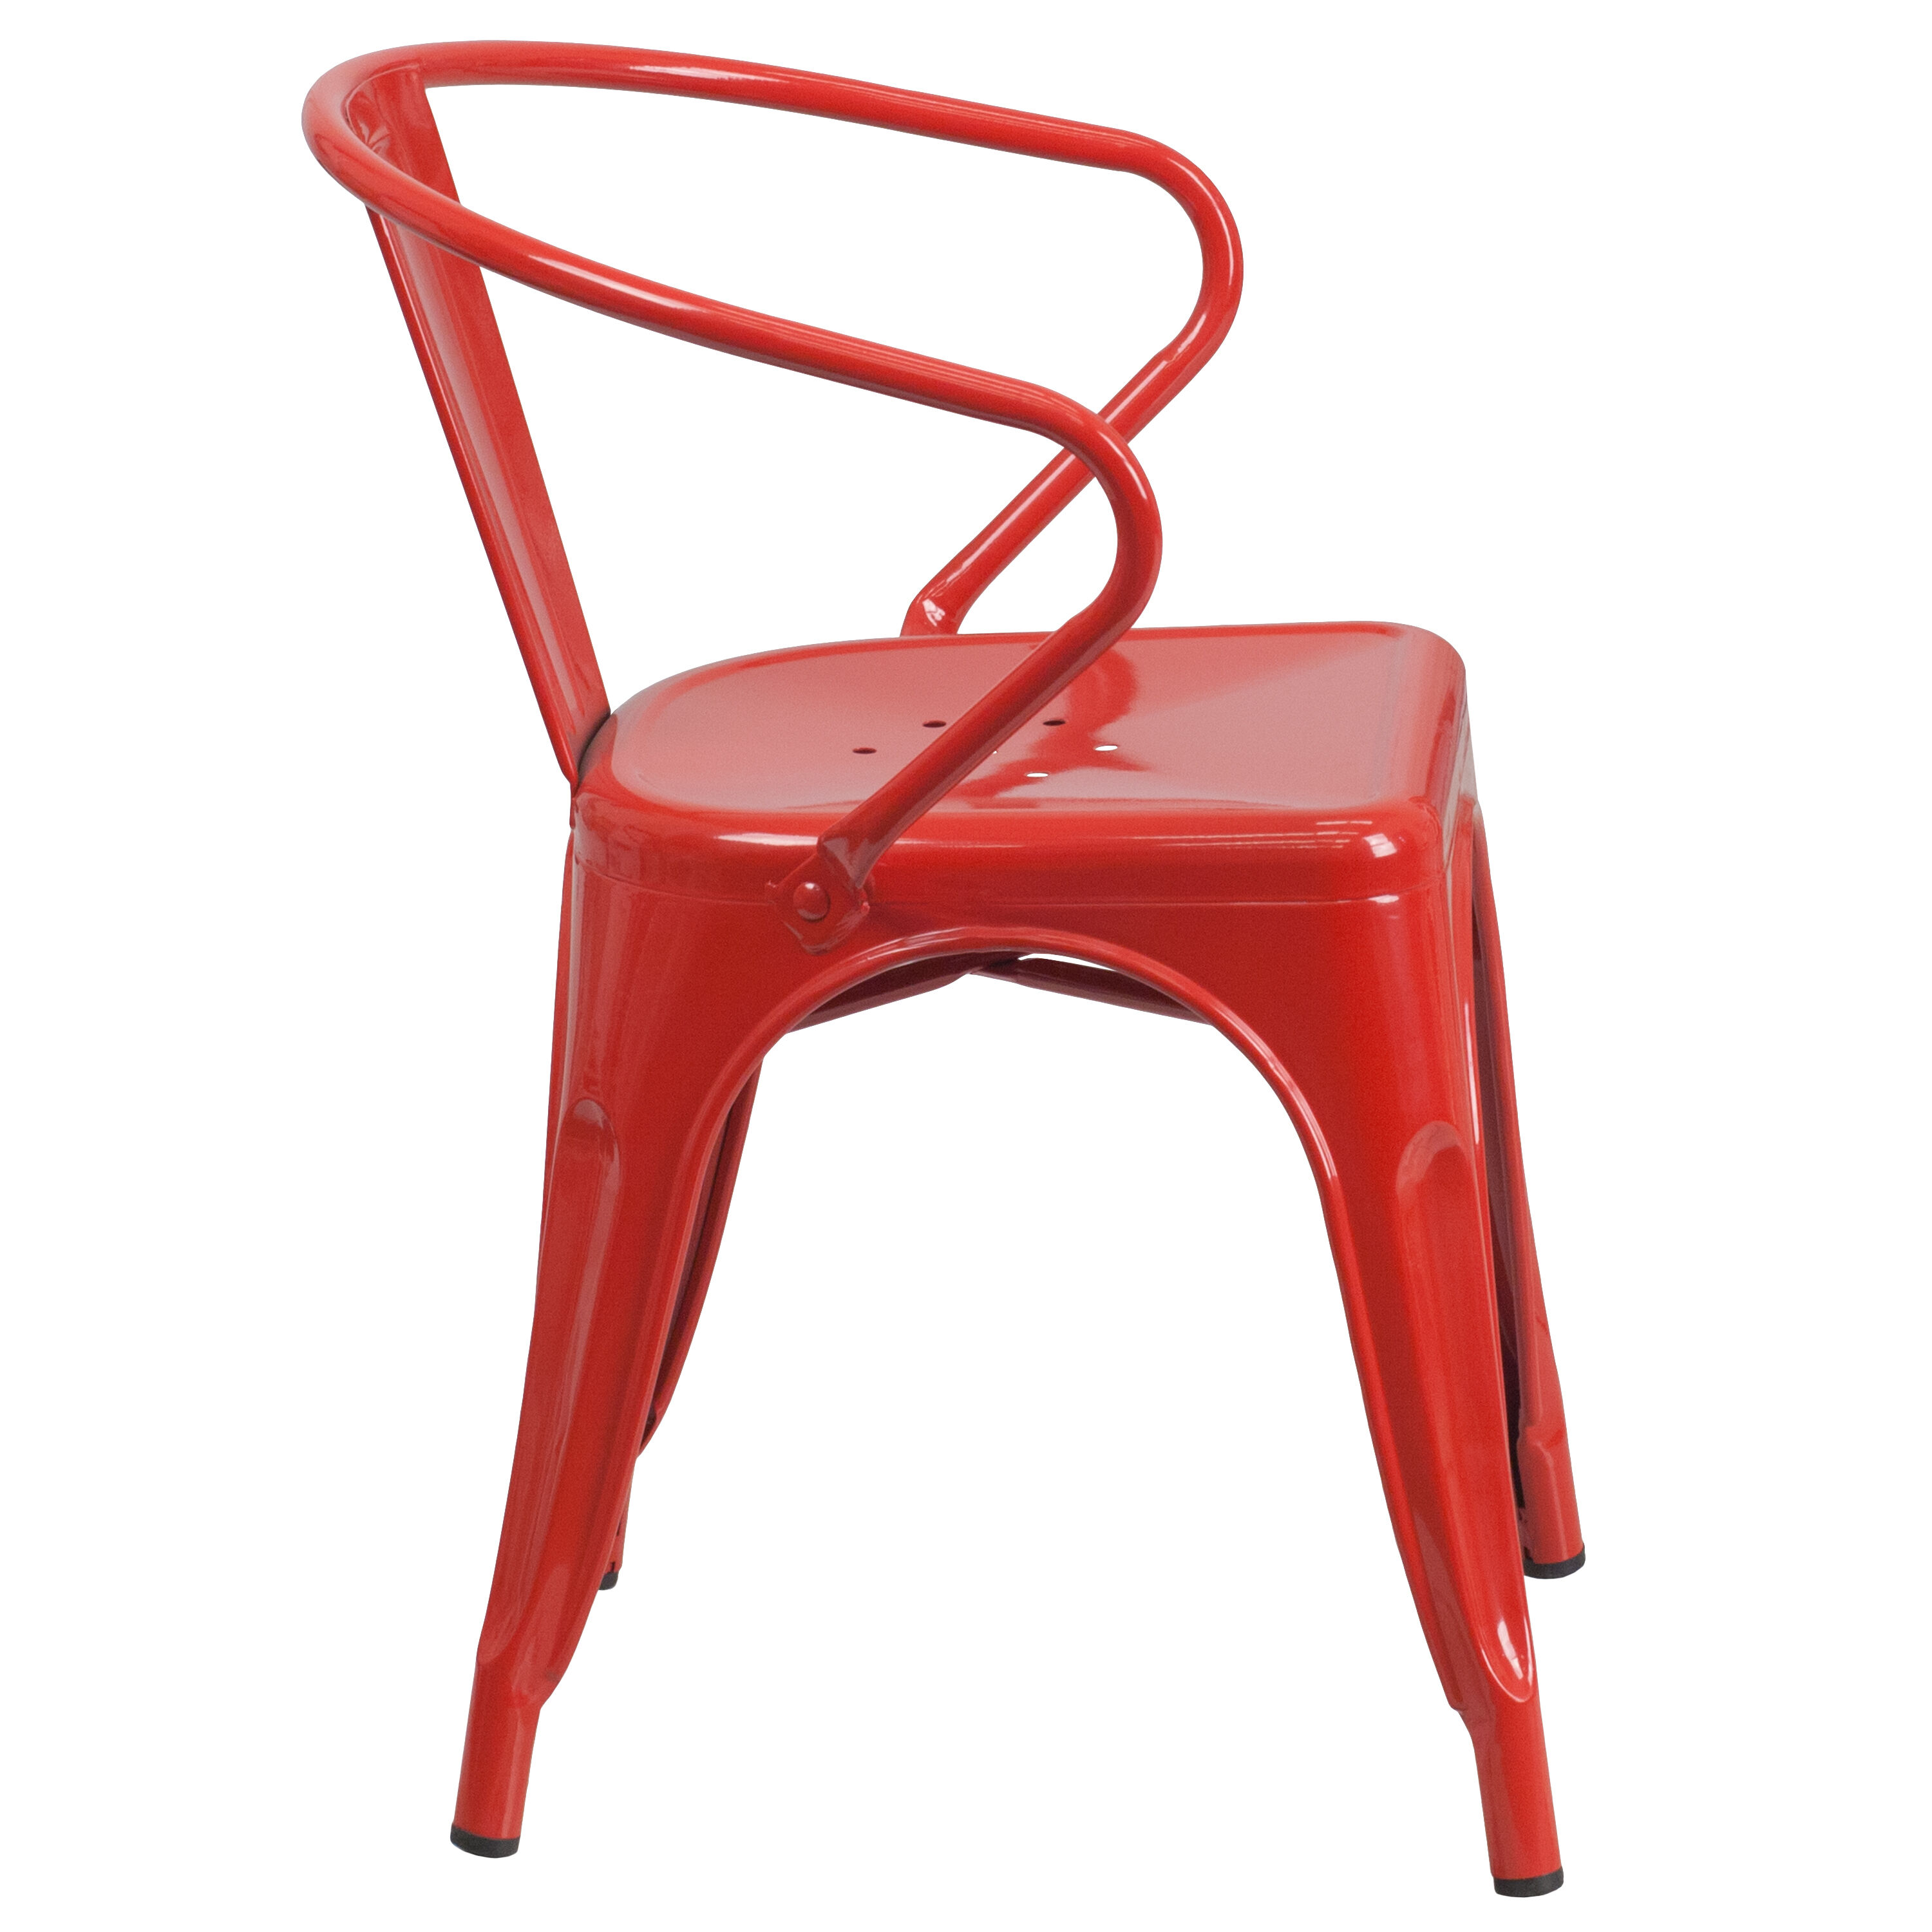 Ordinaire Our Red Metal Indoor Outdoor Chair With Arms Is On Sale Now.